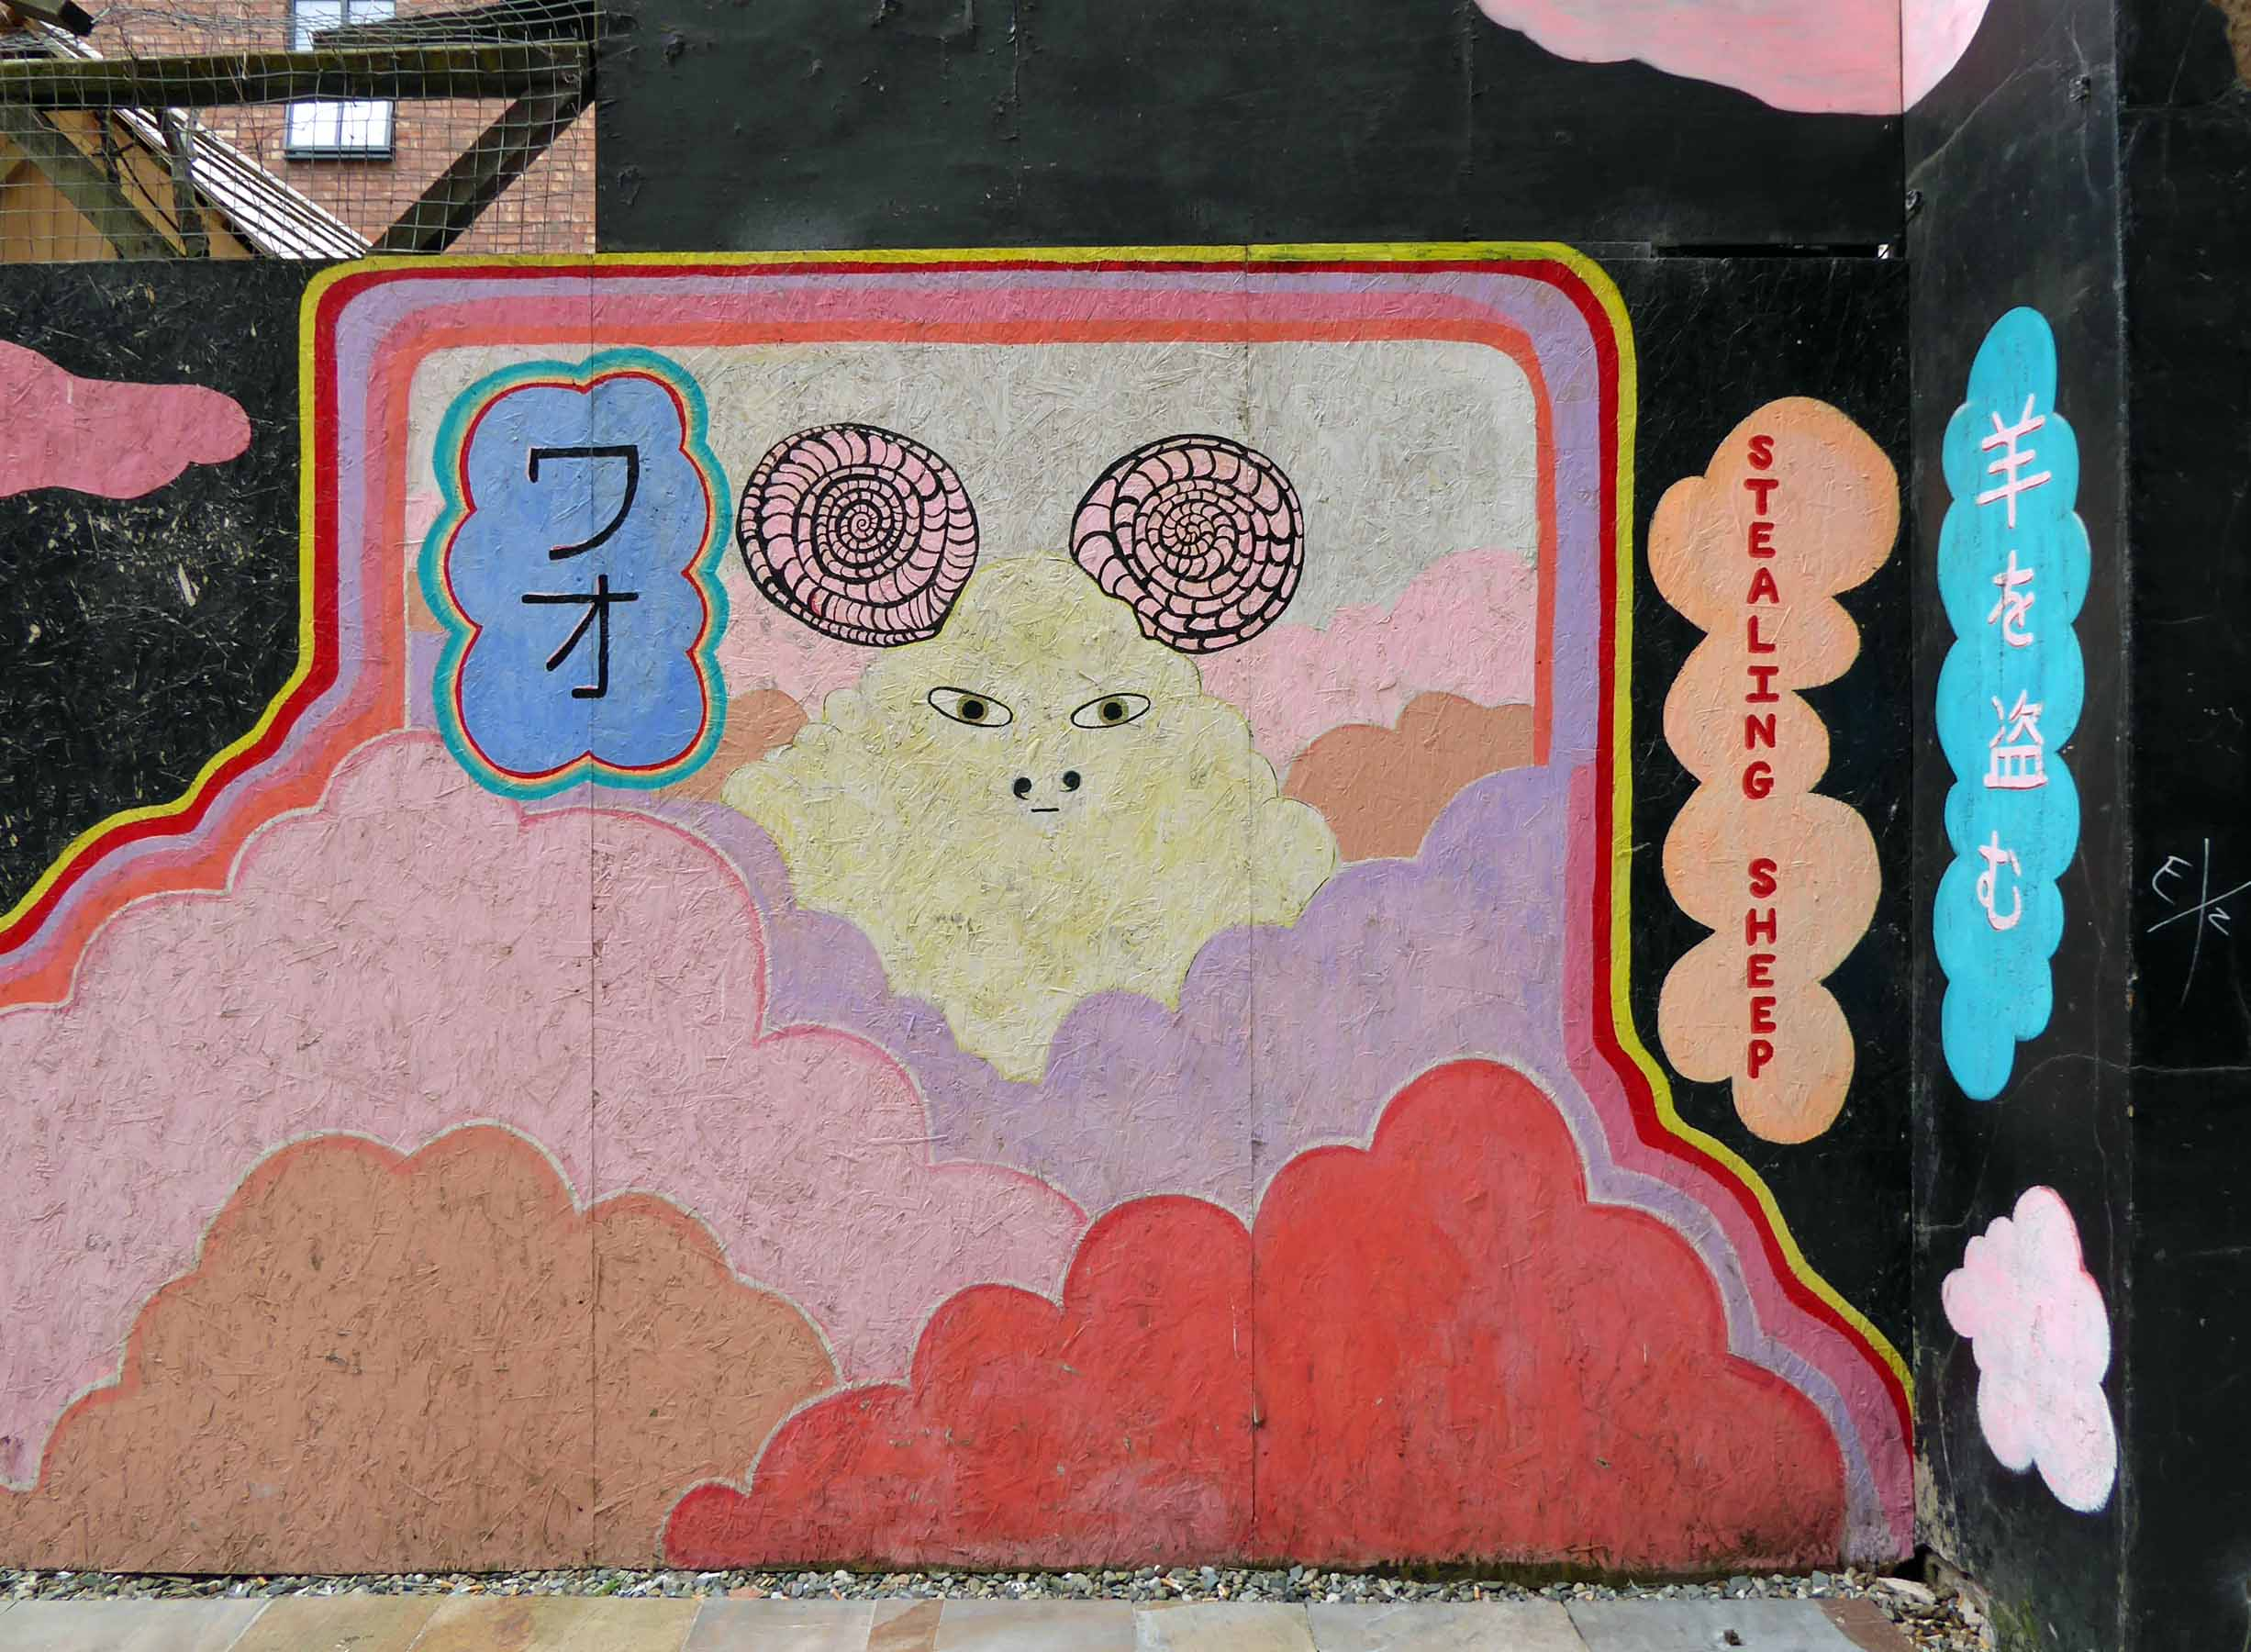 Hoarding with wall painting of clouds and a sheep